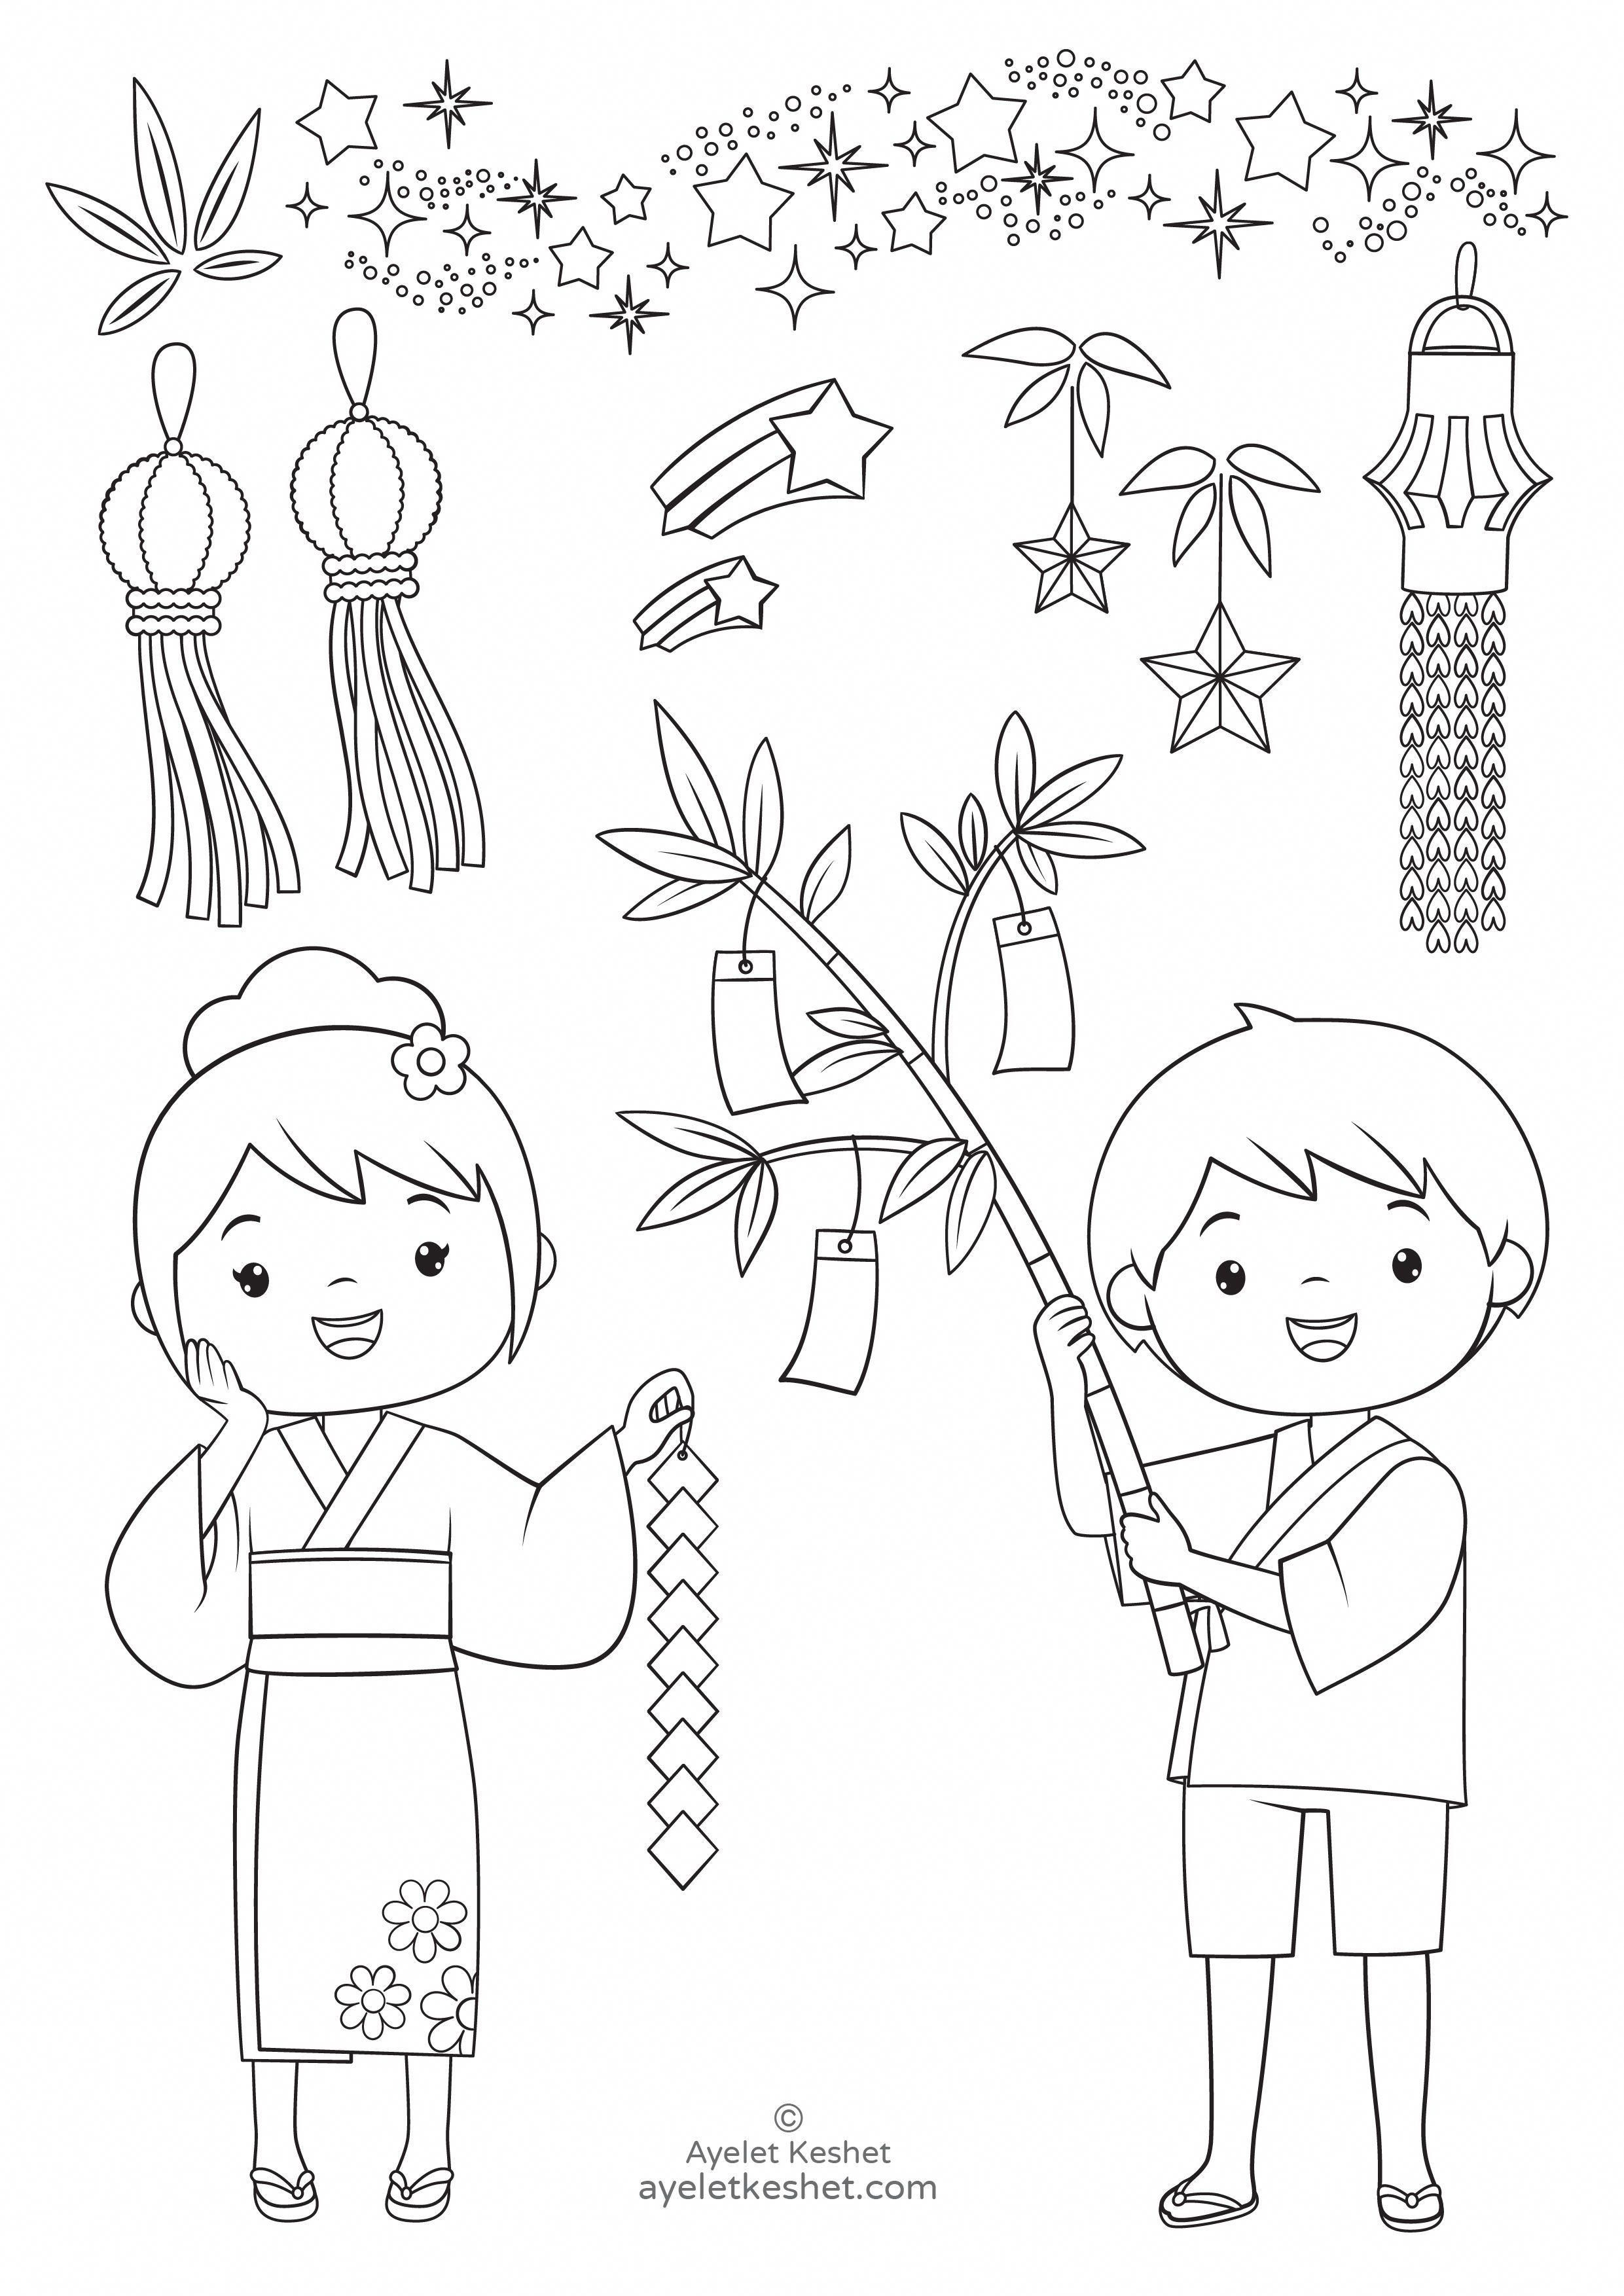 Free Coloring Pages About Japan For Kids Ayelet Keshet Japan For Kids Free Coloring Pages Coloring Japan